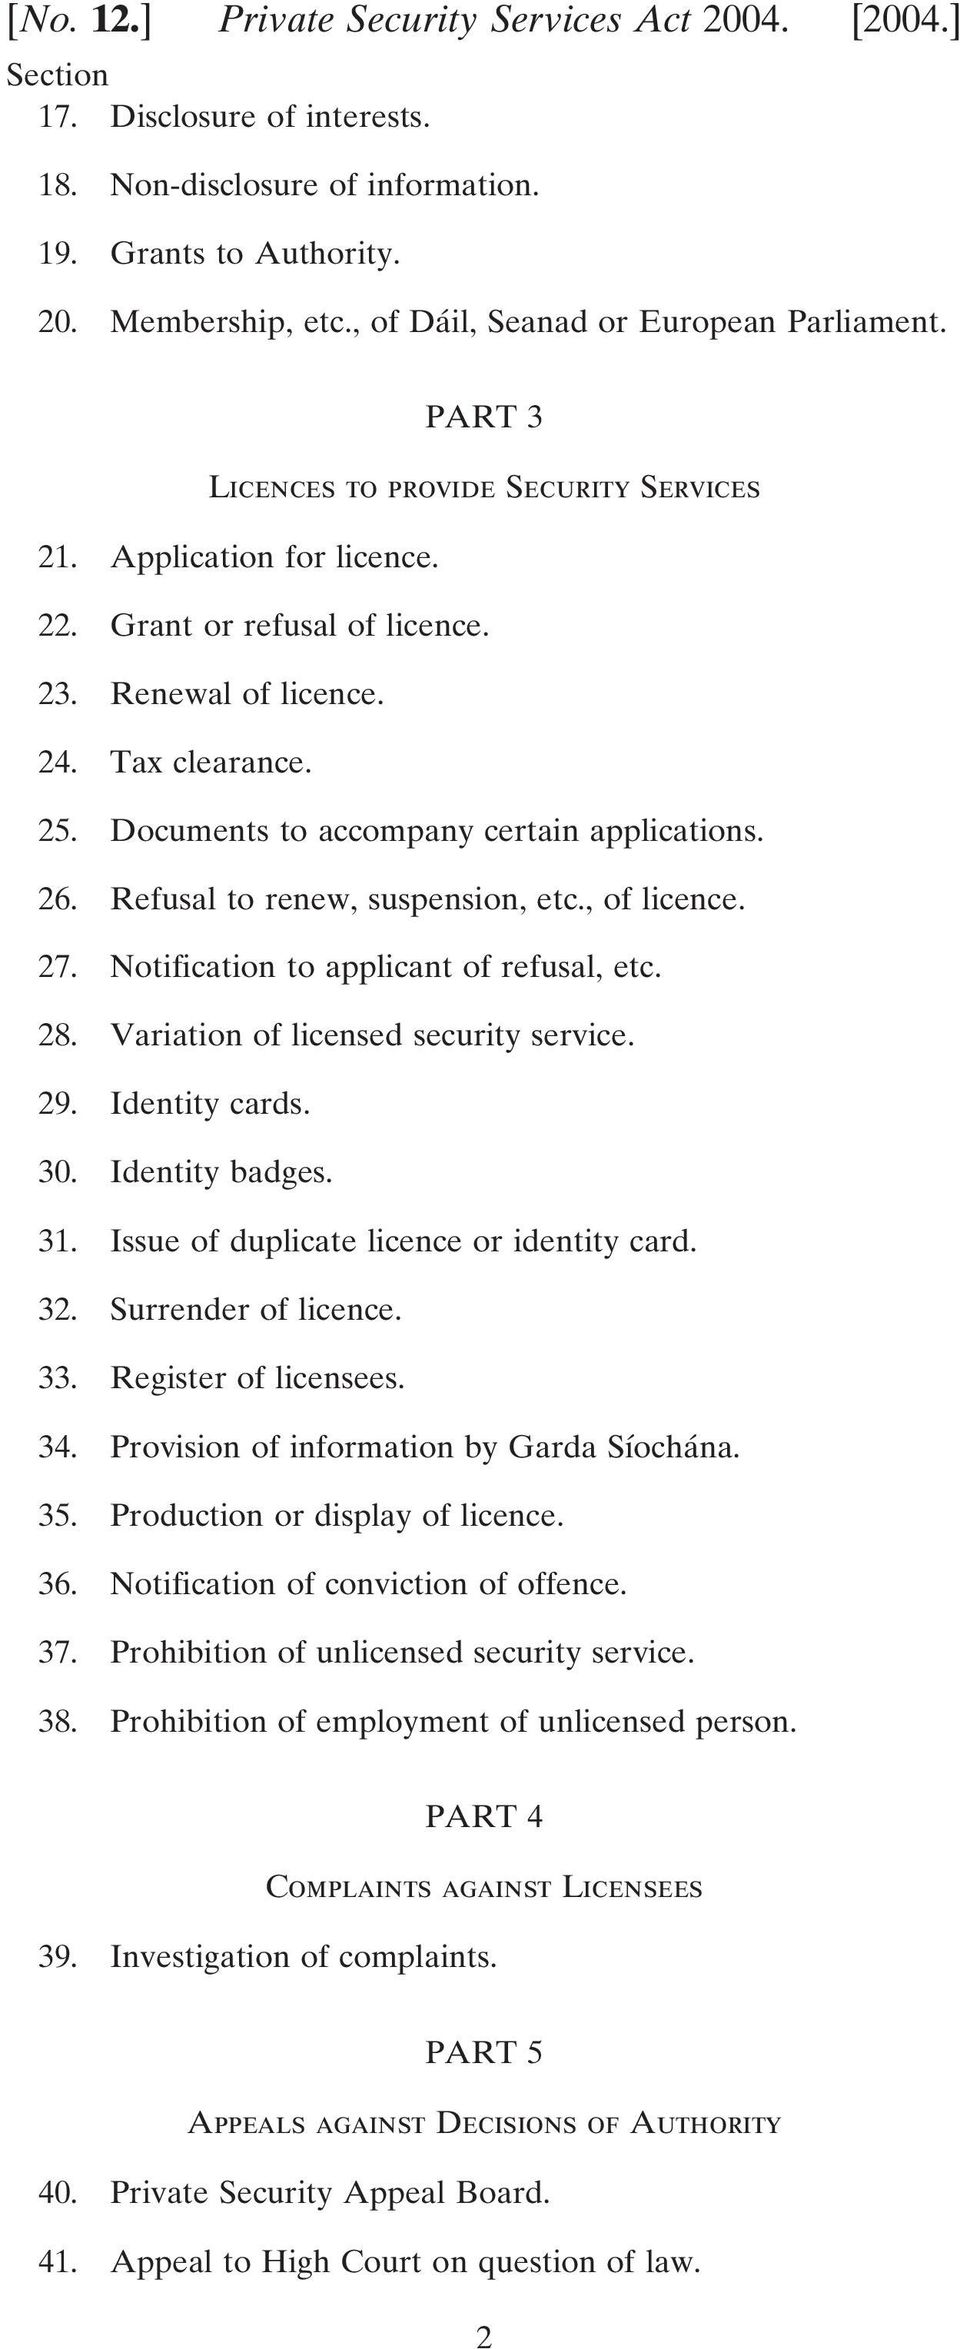 Documents to accompany certain applications. 26. Refusal to renew, suspension, etc., of licence. 27. Notification to applicant of refusal, etc. 28. Variation of licensed security service. 29.